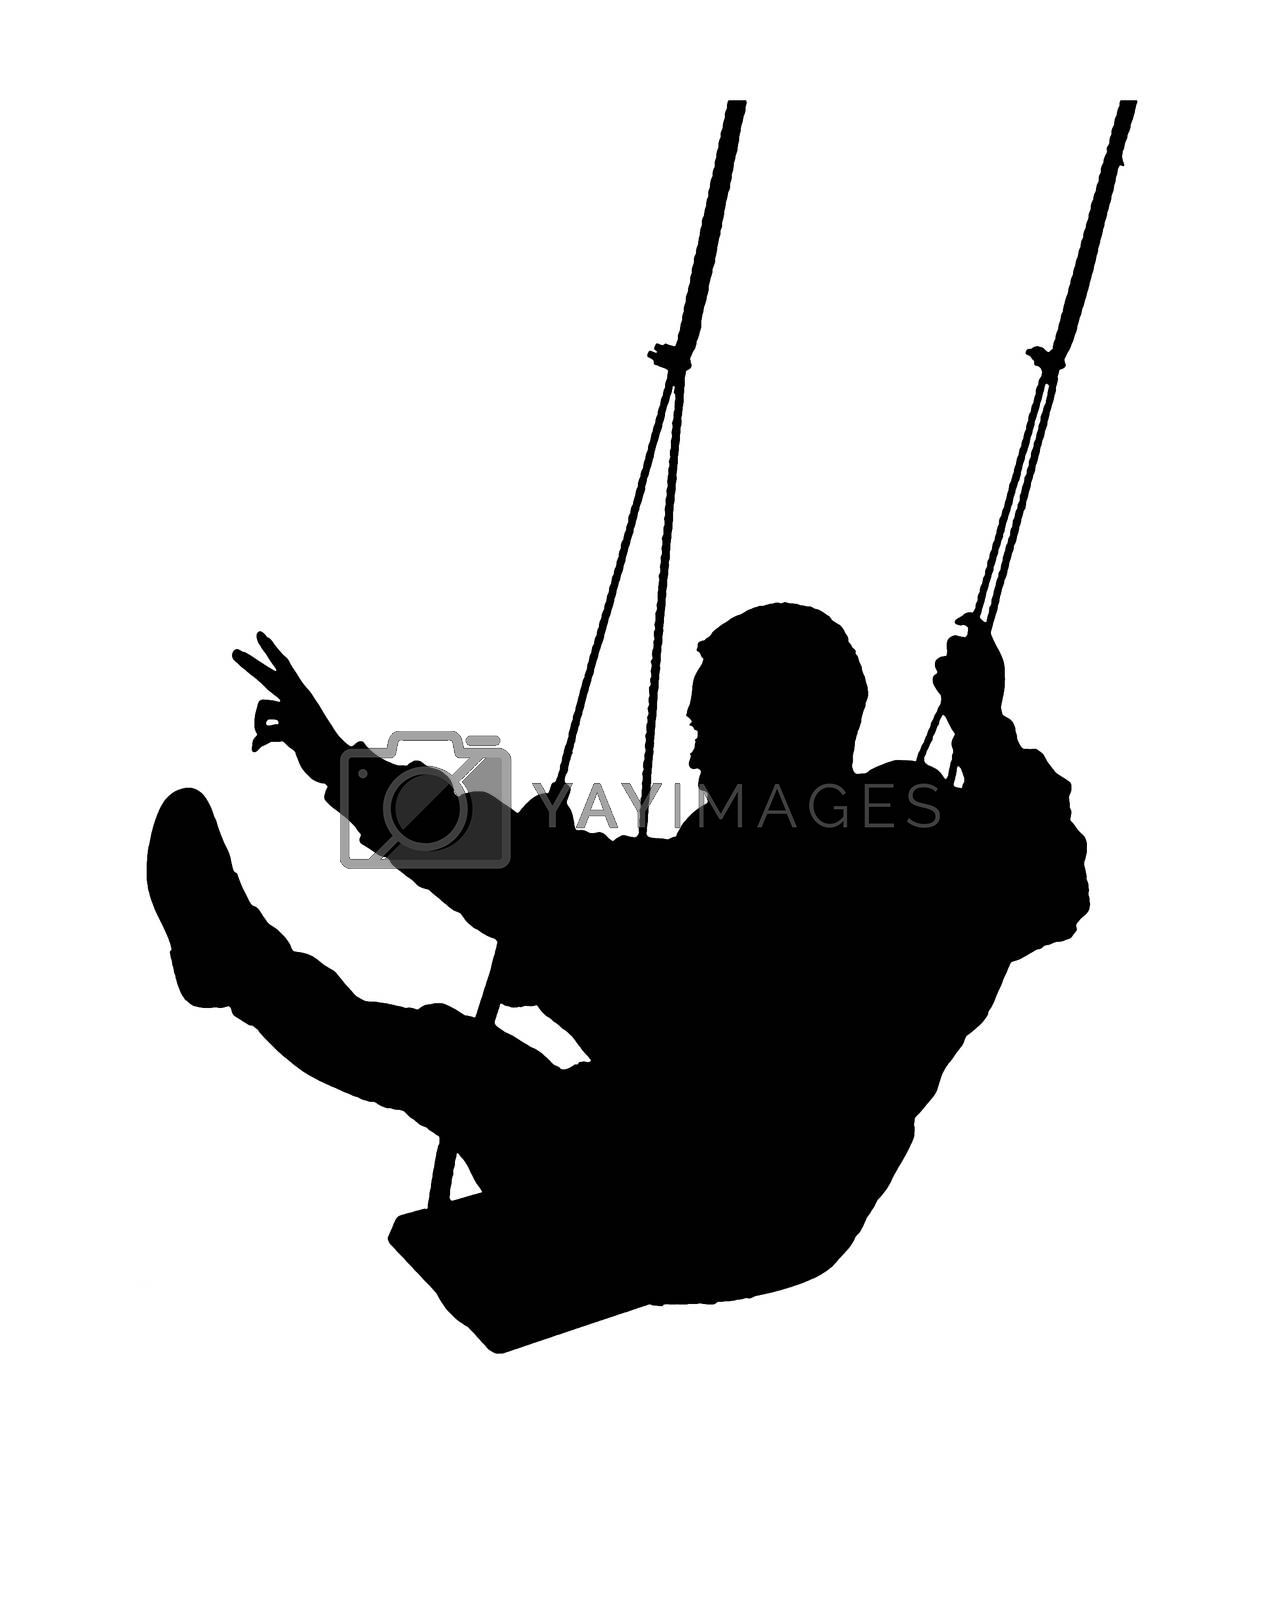 Graphic silhouette illustration man swinging isolated on white background